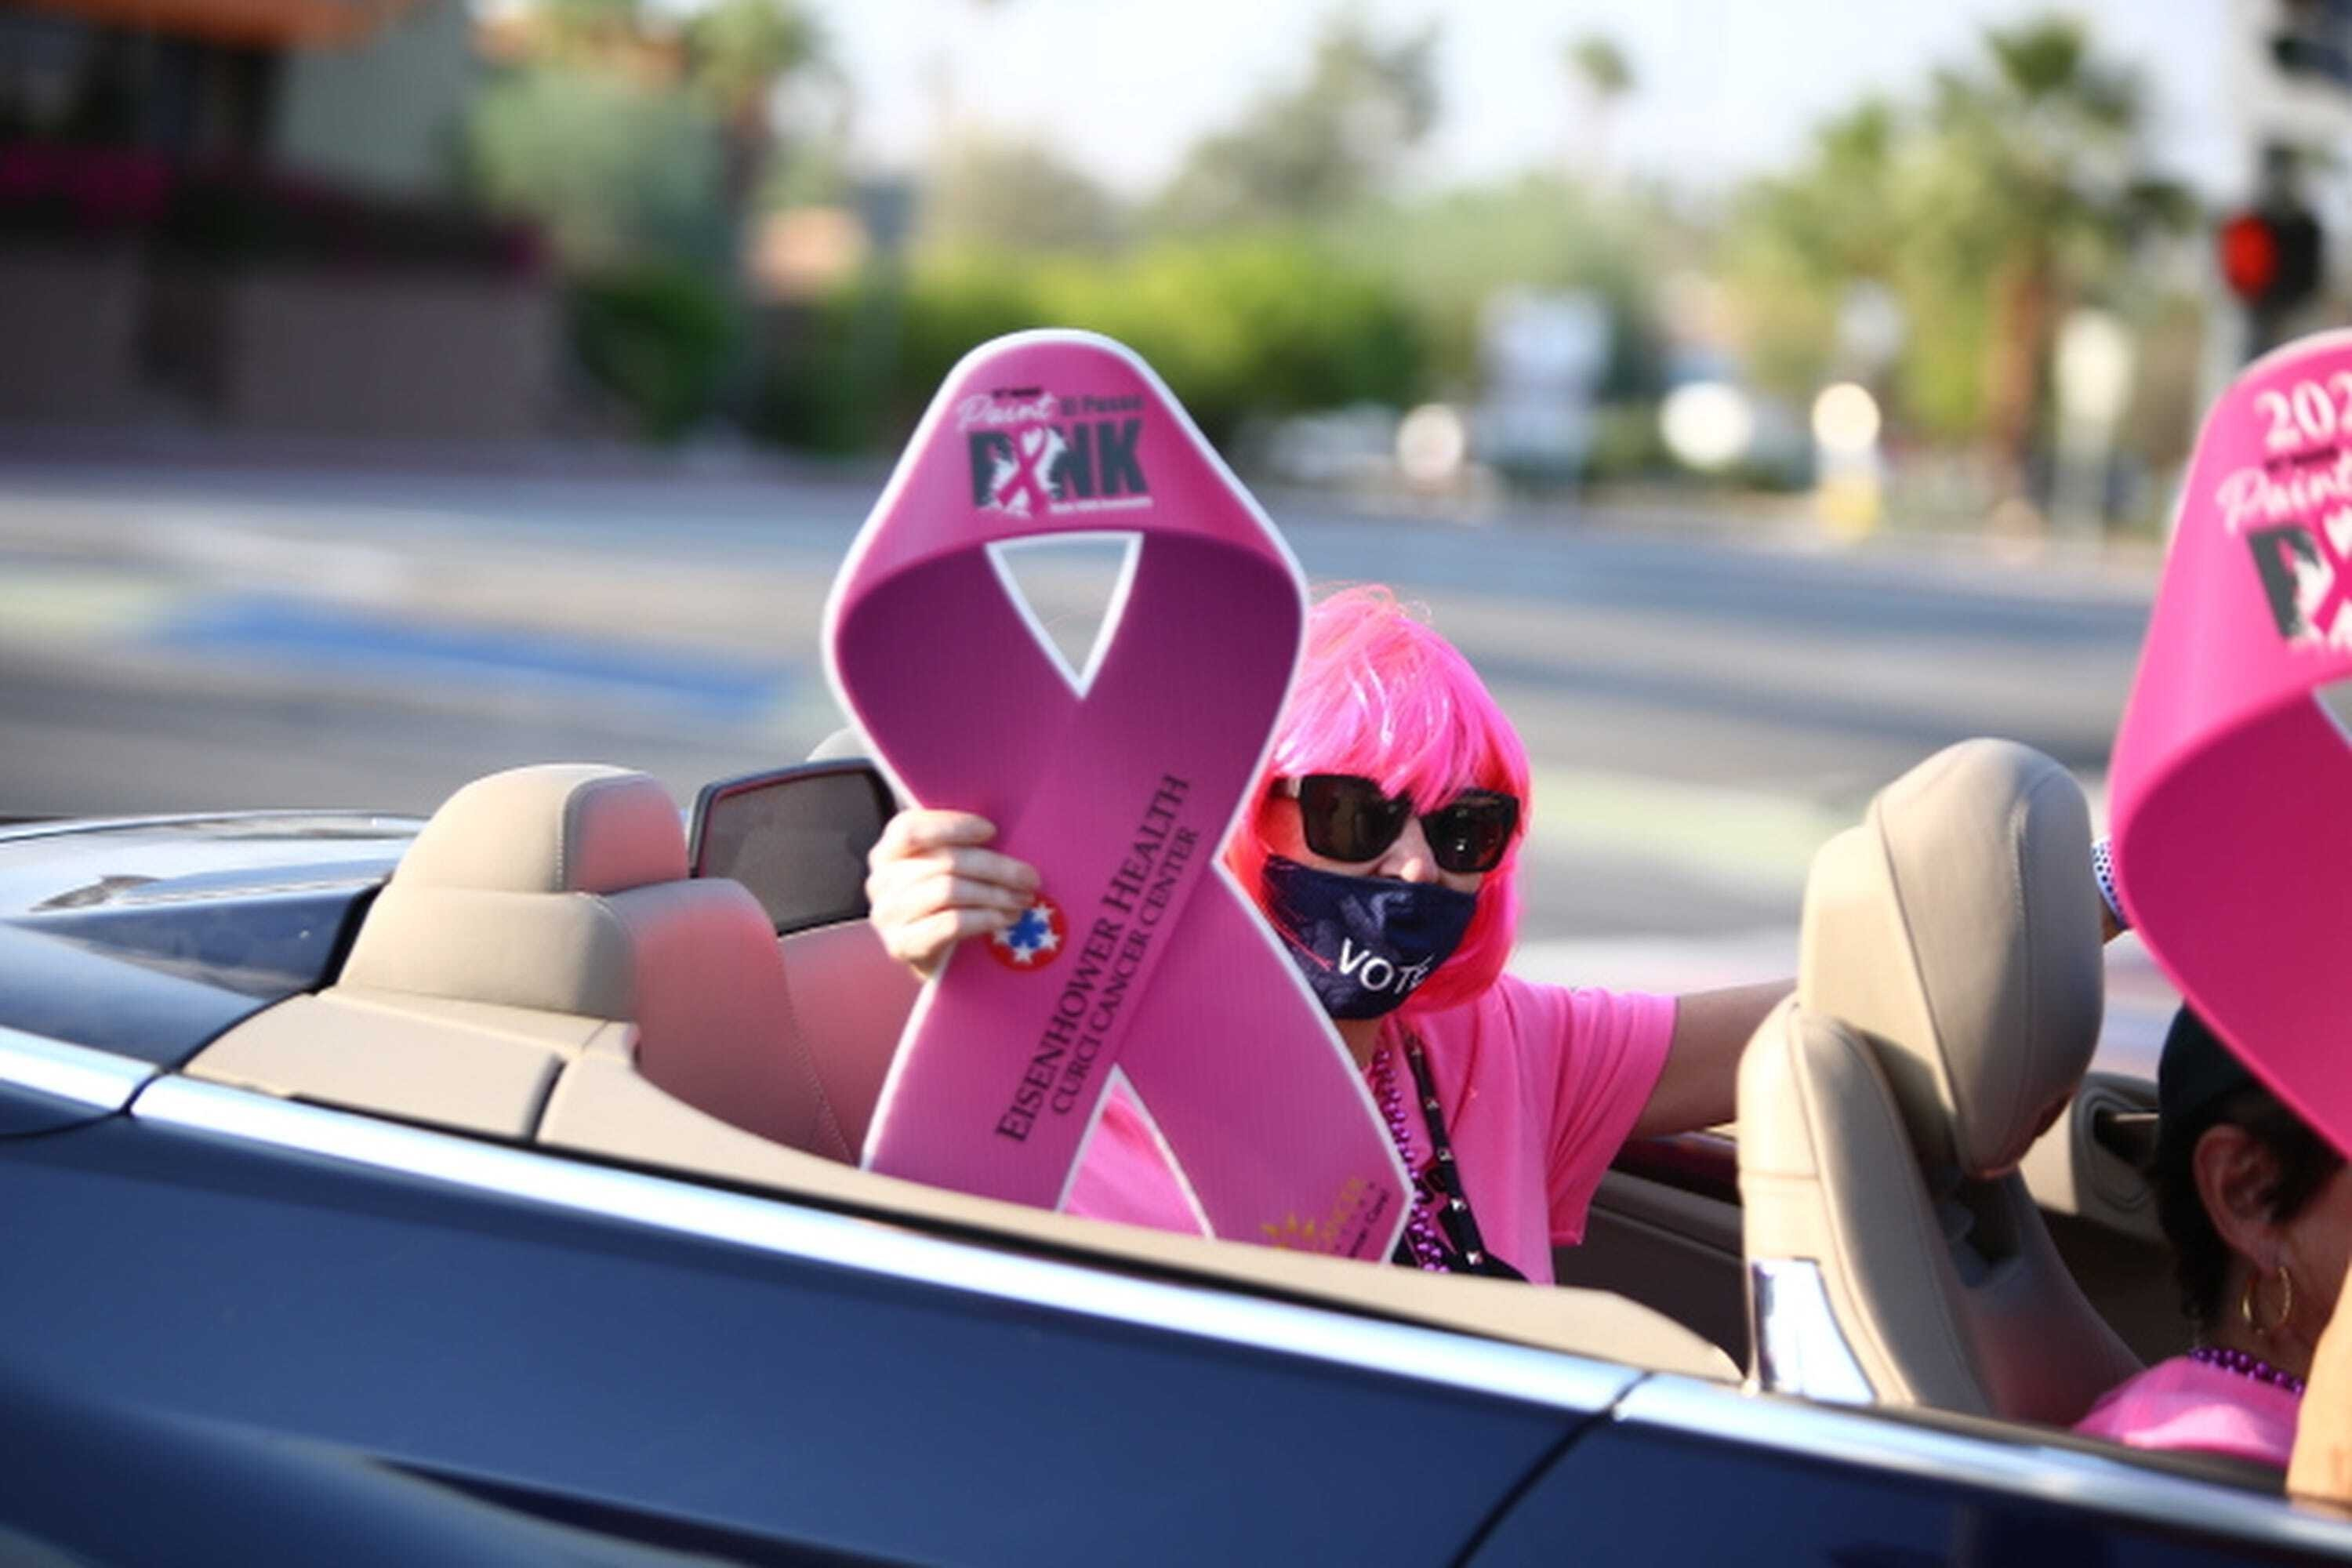 Friday Cruise Night on El Paseo, the opening event for Saturday's Paint El Paseo Pink event, took place in Palm Desert, Calif., on October 9, 2020. (REUTERS Photo)